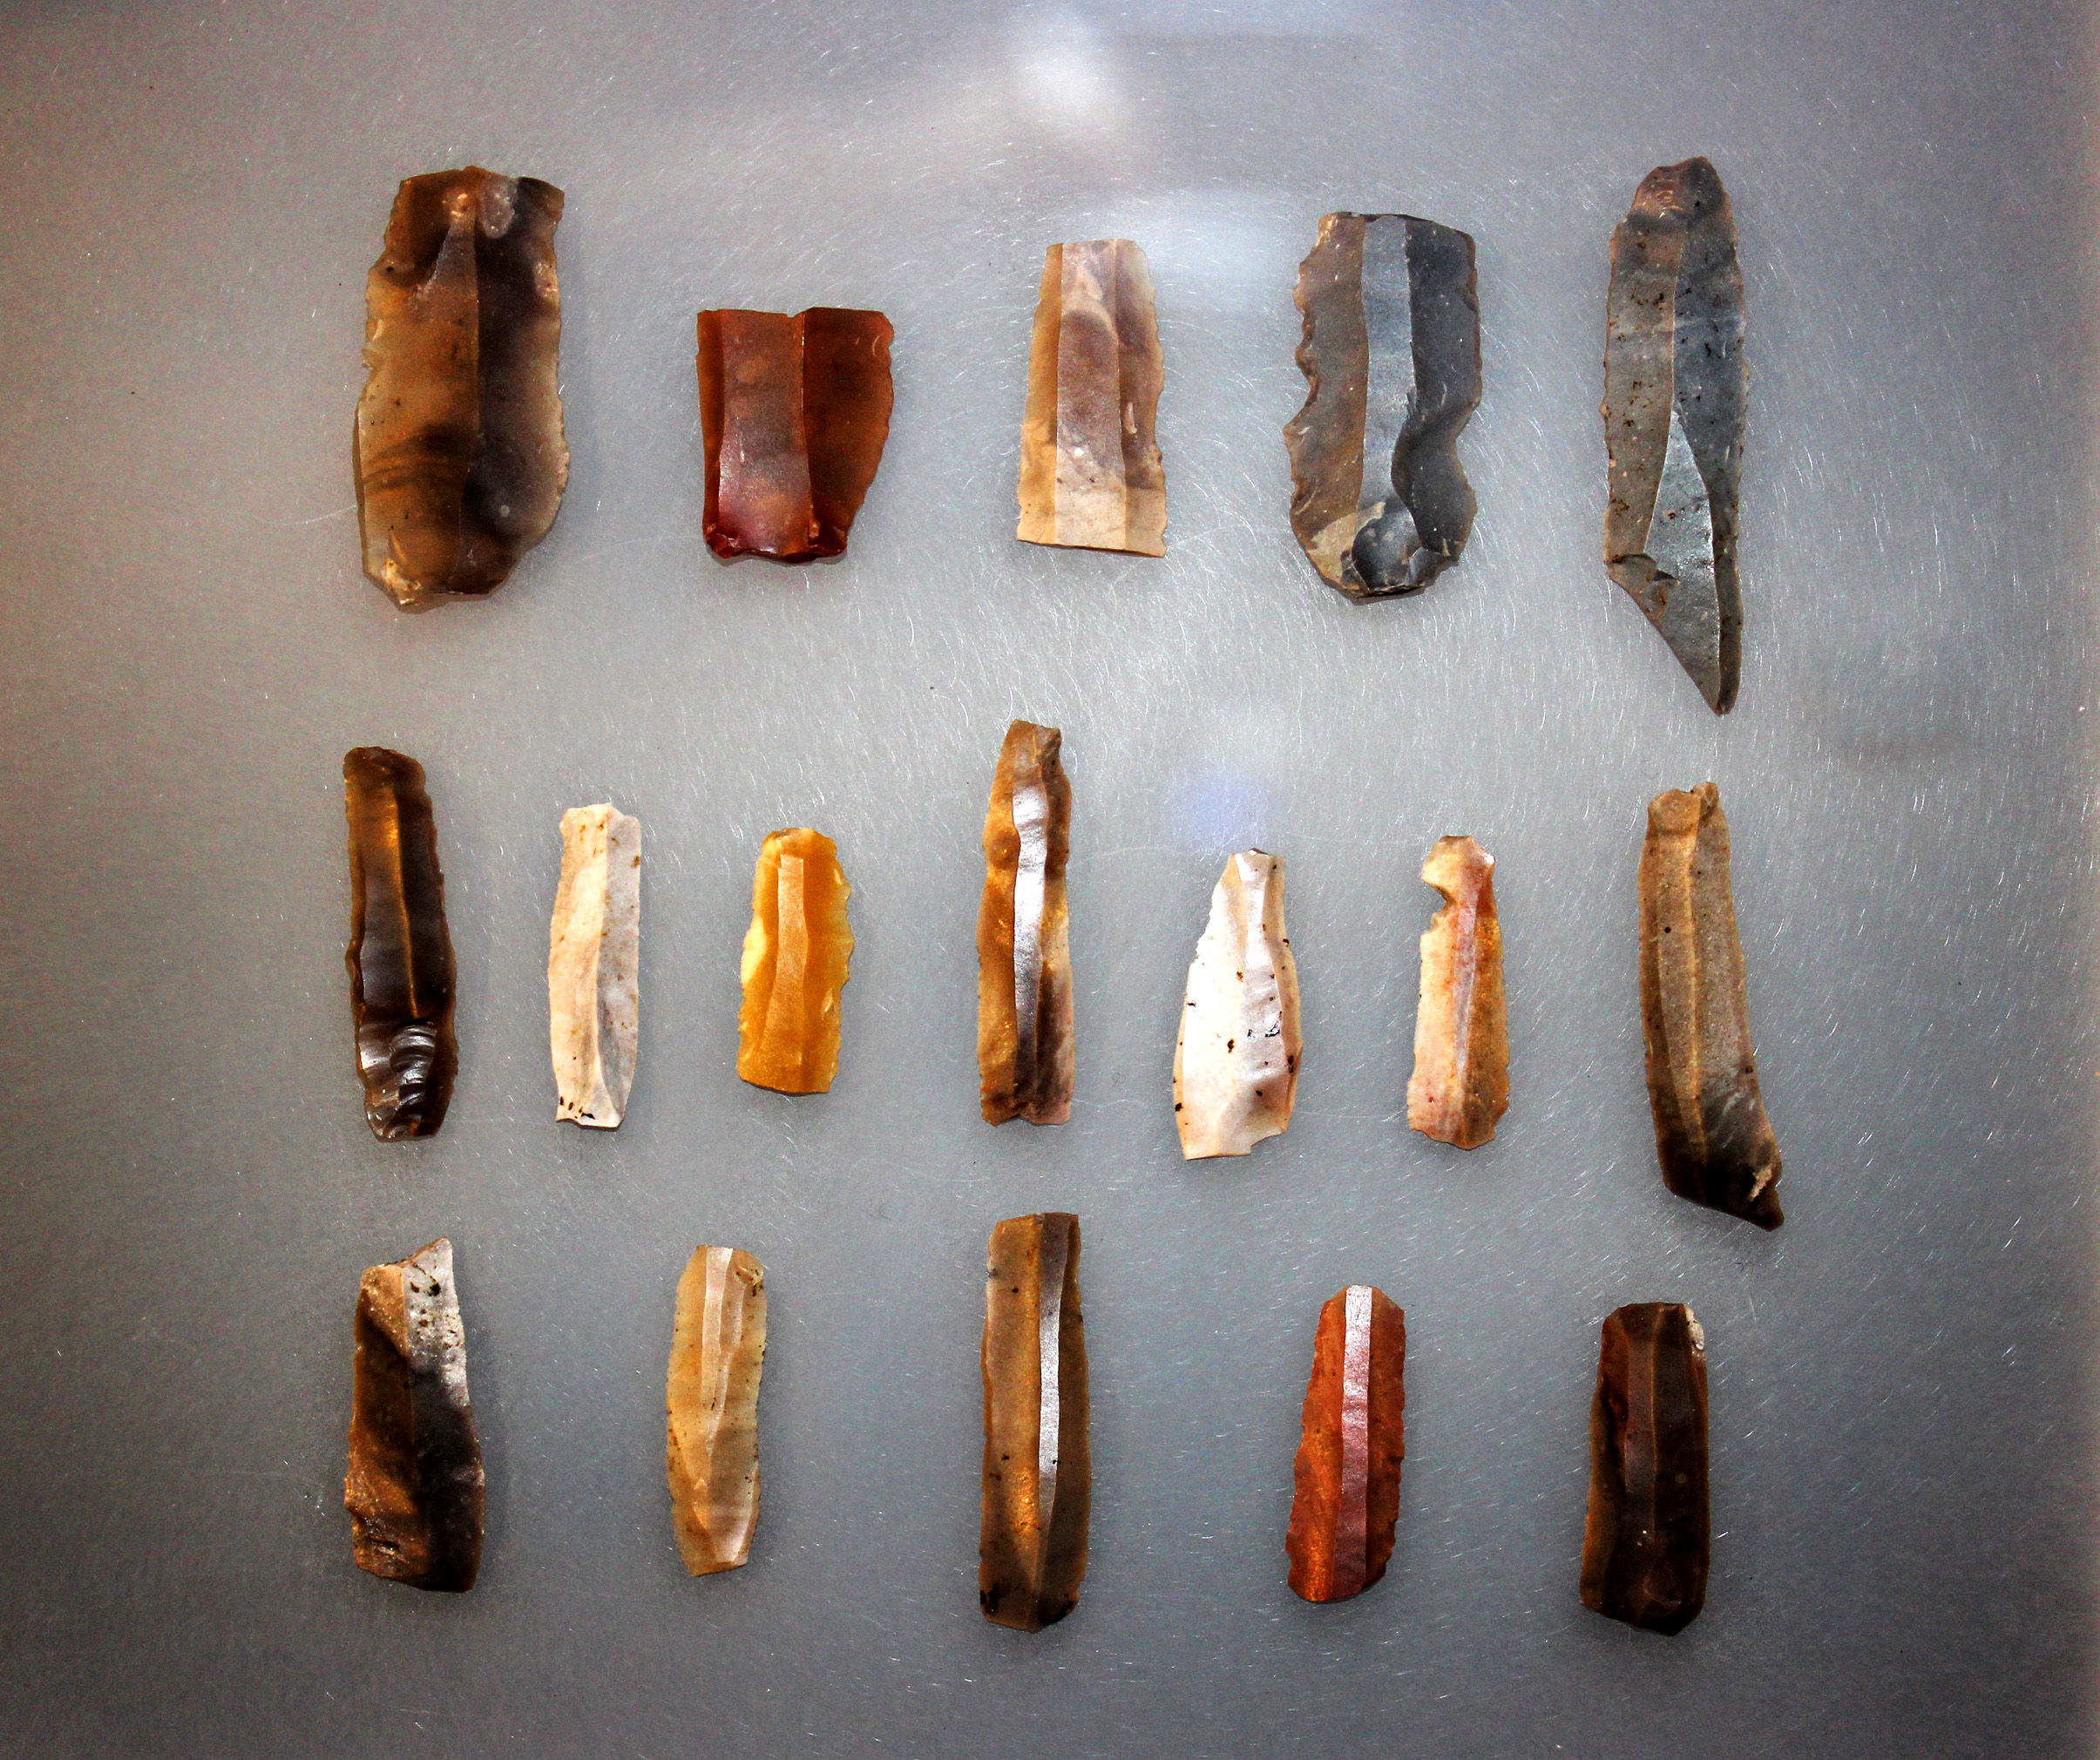 Primitive Tools - Neolithic Flint Blades, Ancient, Research, Locality, Man, HQ Photo